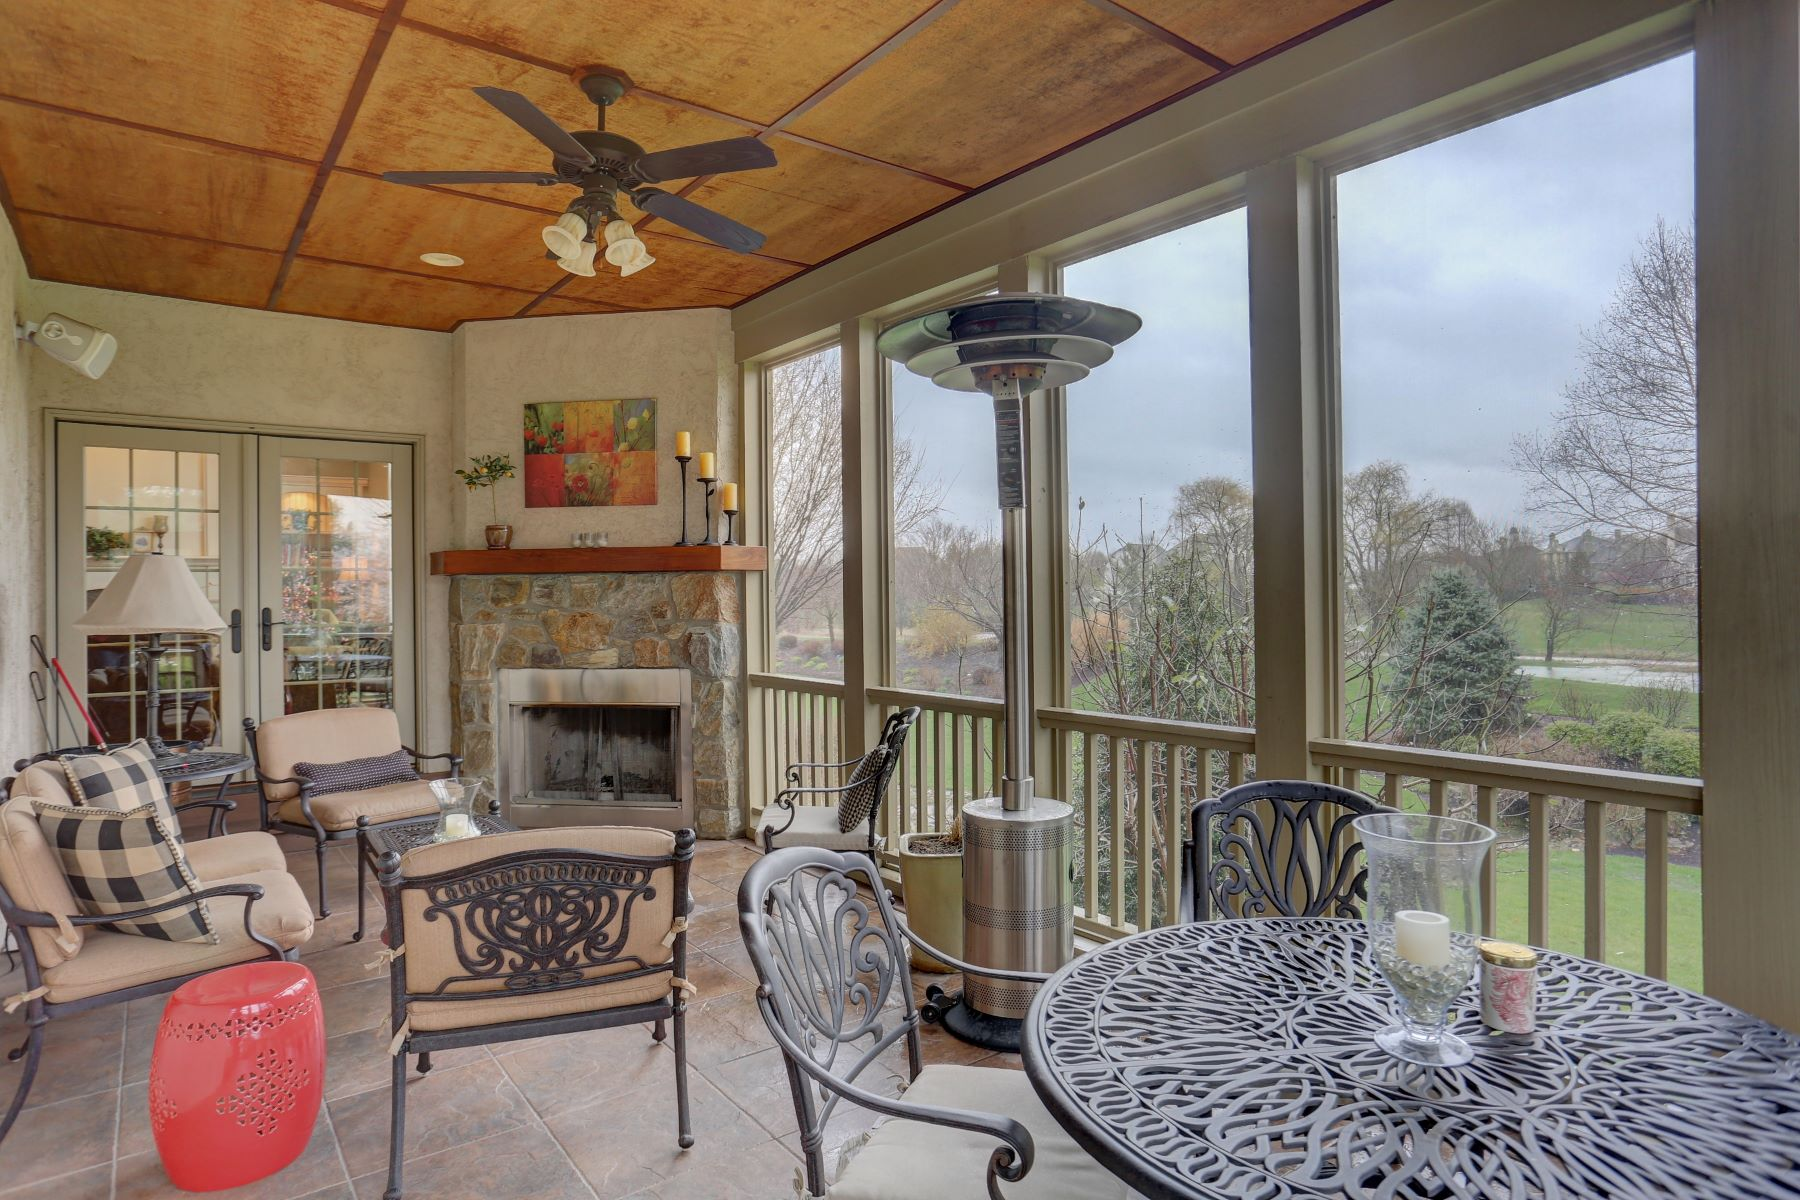 Single Family Home for Sale at 510 Wheatfield Drive Lititz, Pennsylvania 17543 United States